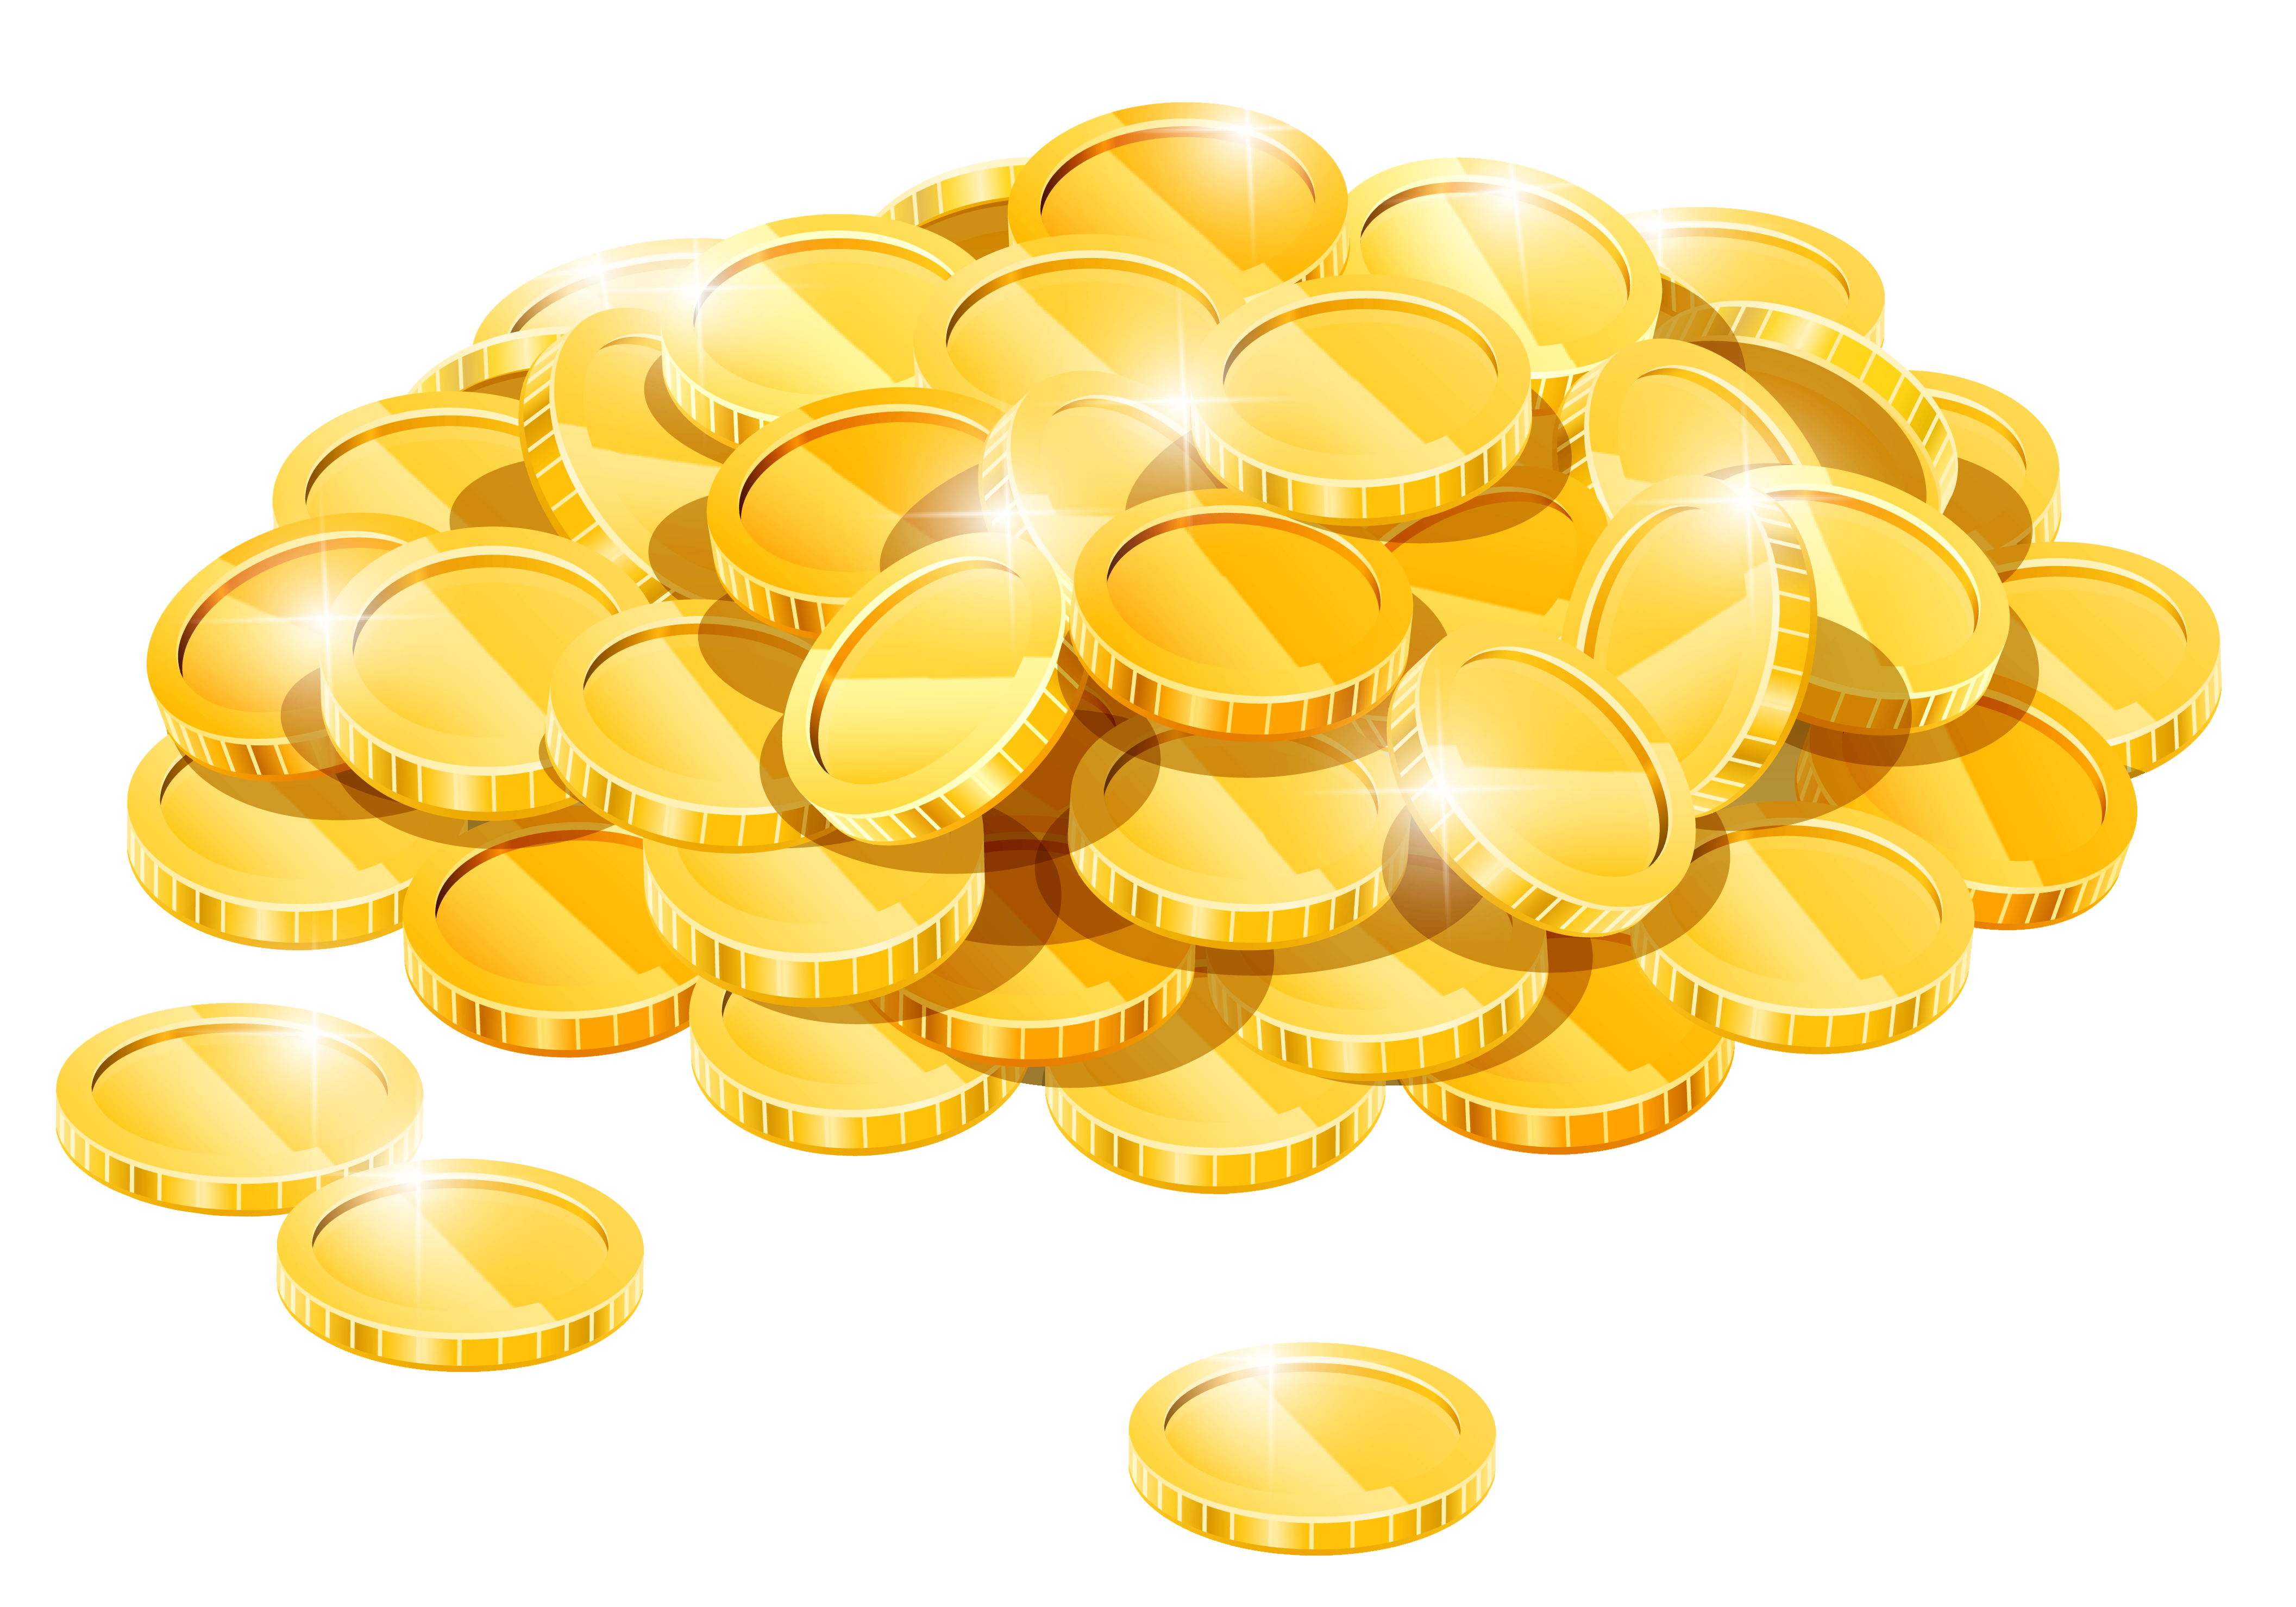 Clipart Gold Coins.